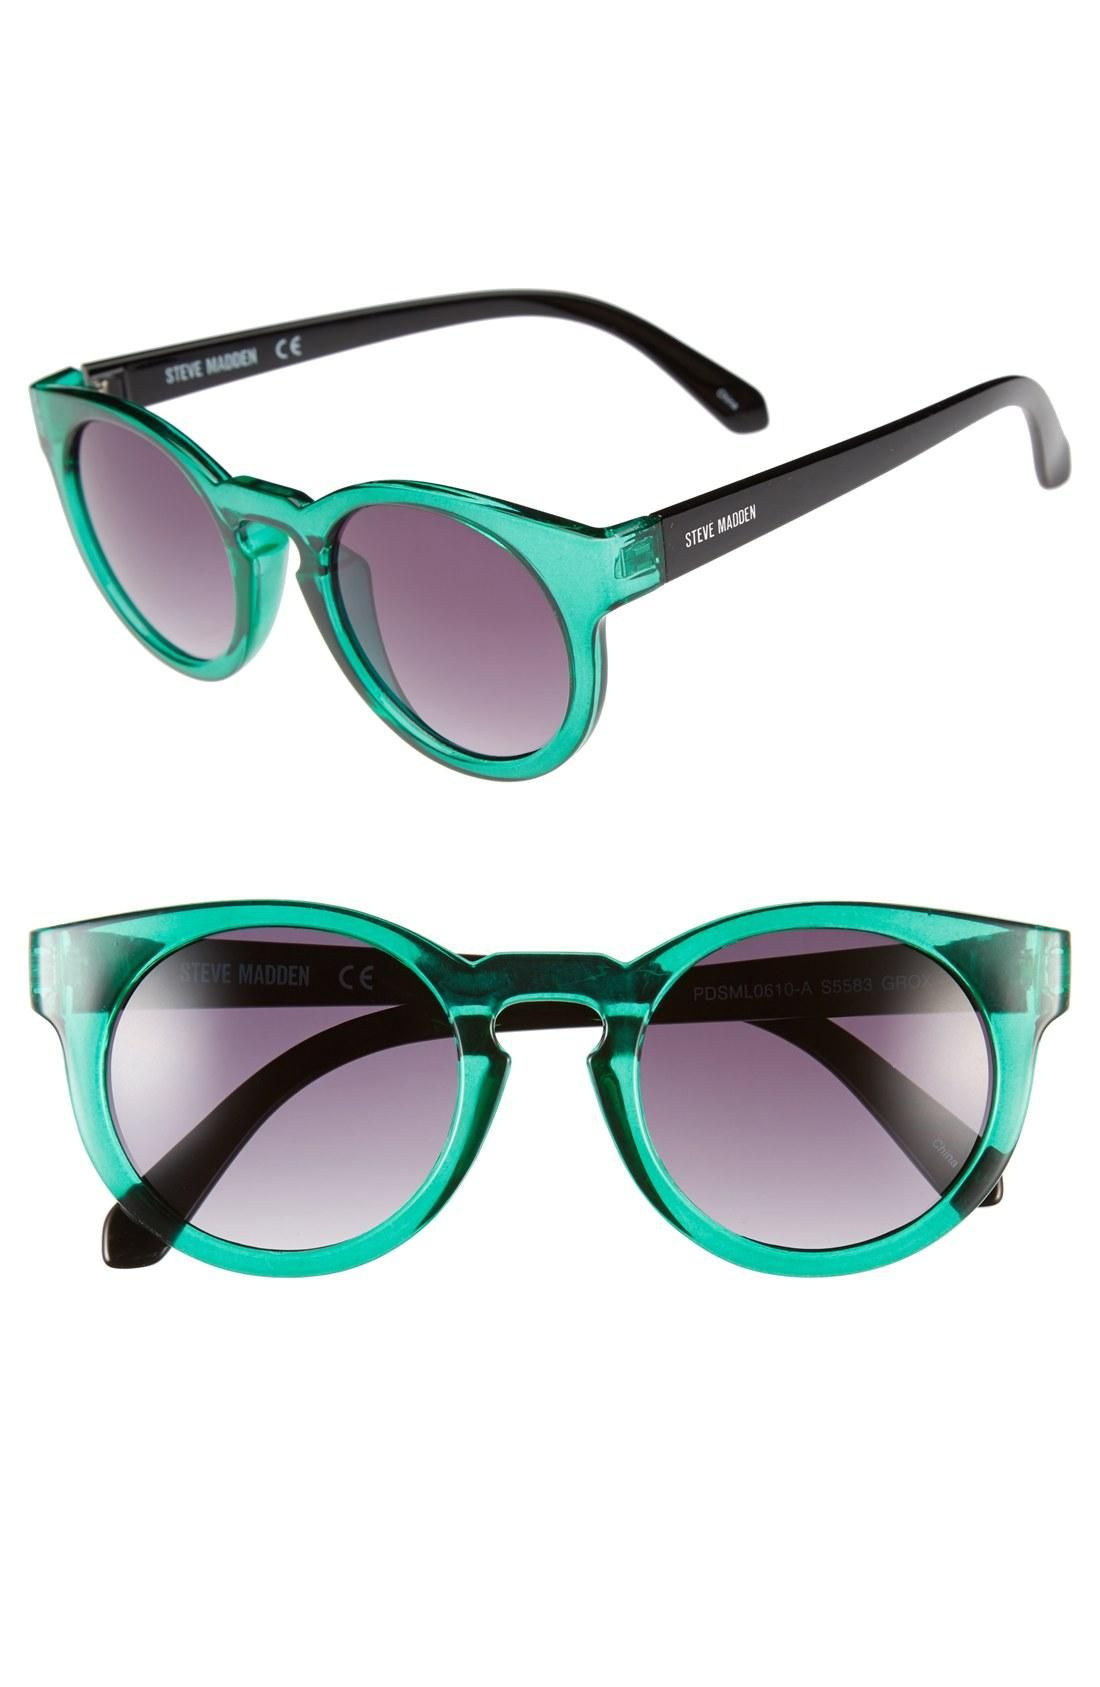 The 25 coolest sunglasses for under $50